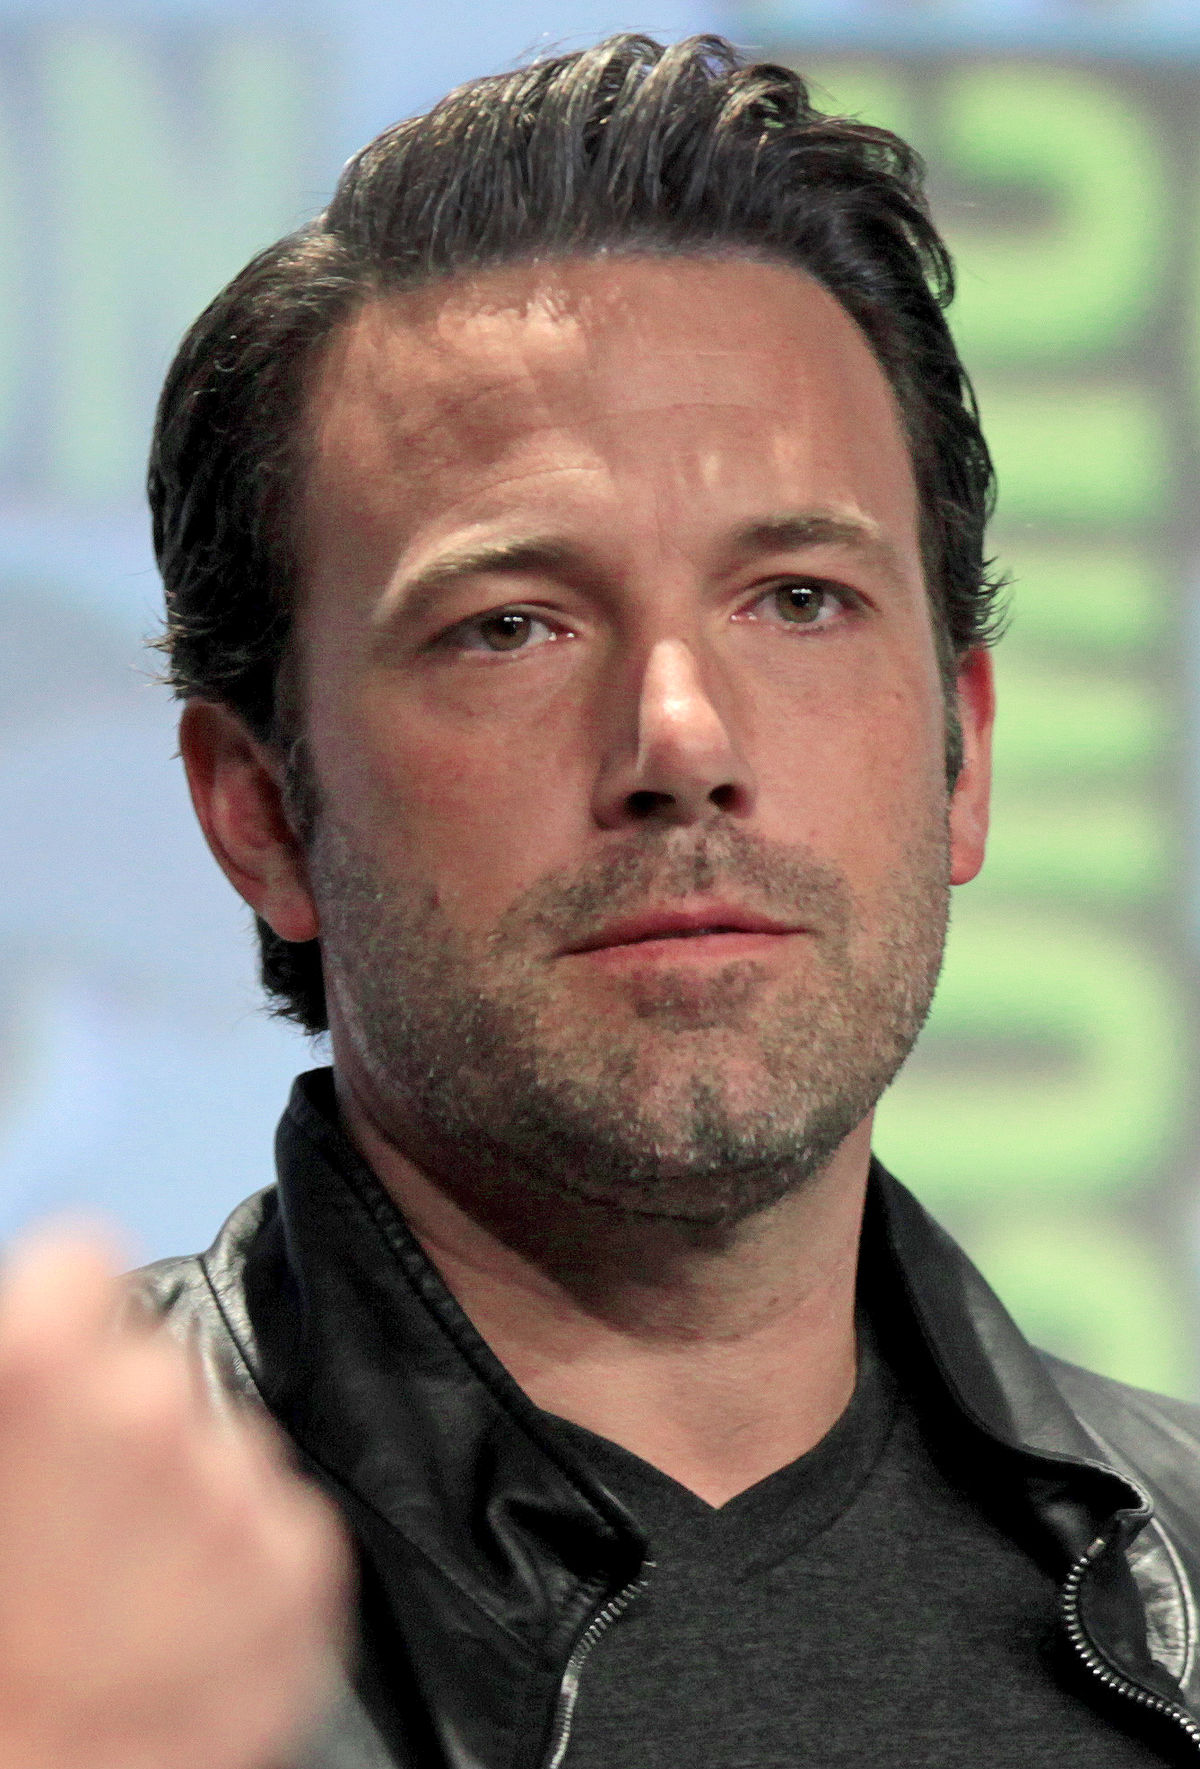 Ben Affleck filmography - Wikipedia Ben Affleck